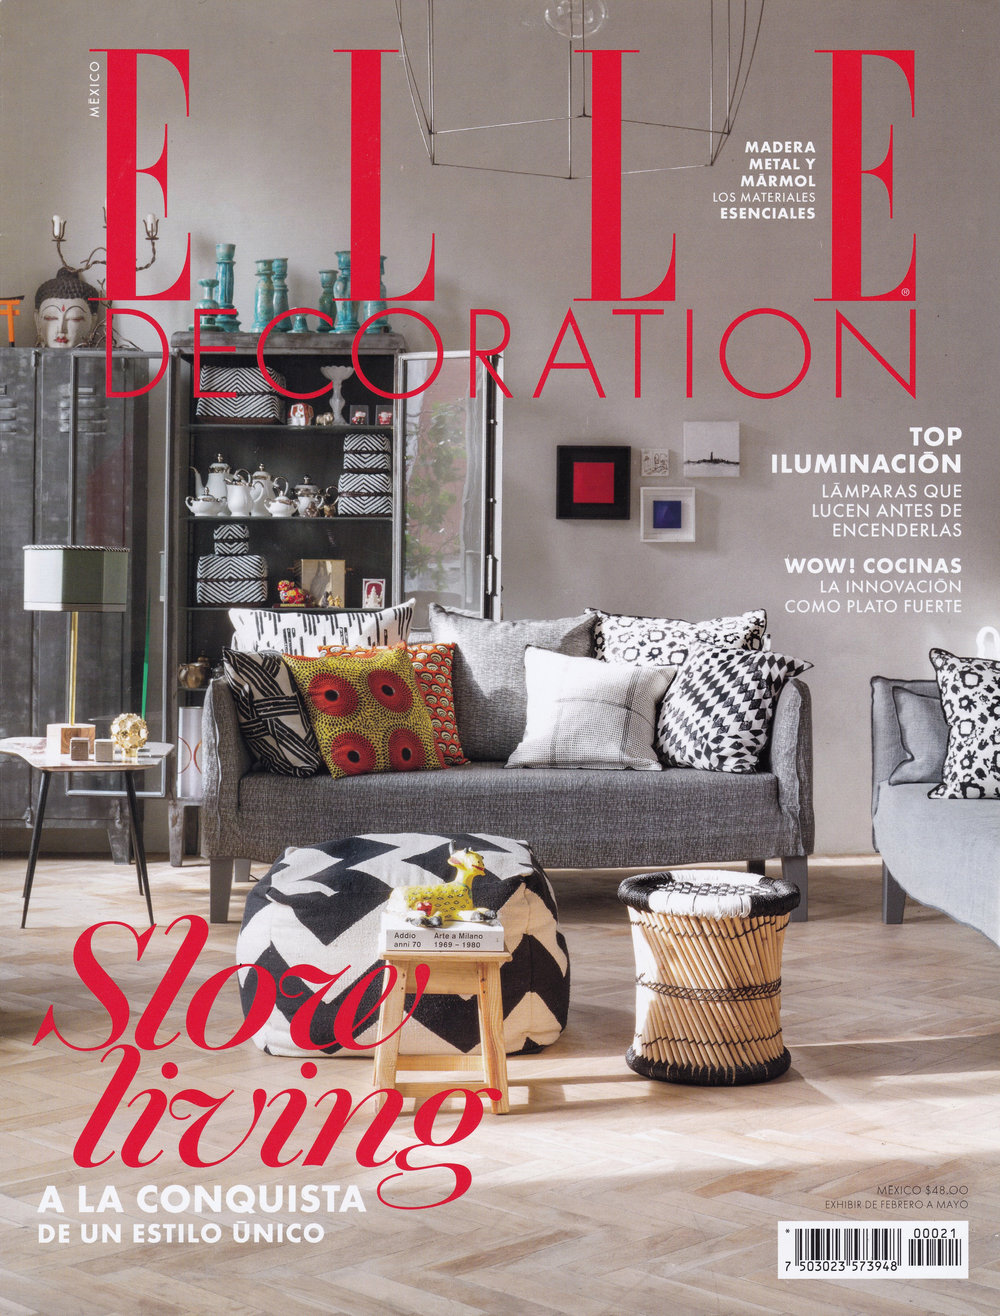 ELLEDECORATION_Feb-May2018-02.jpg